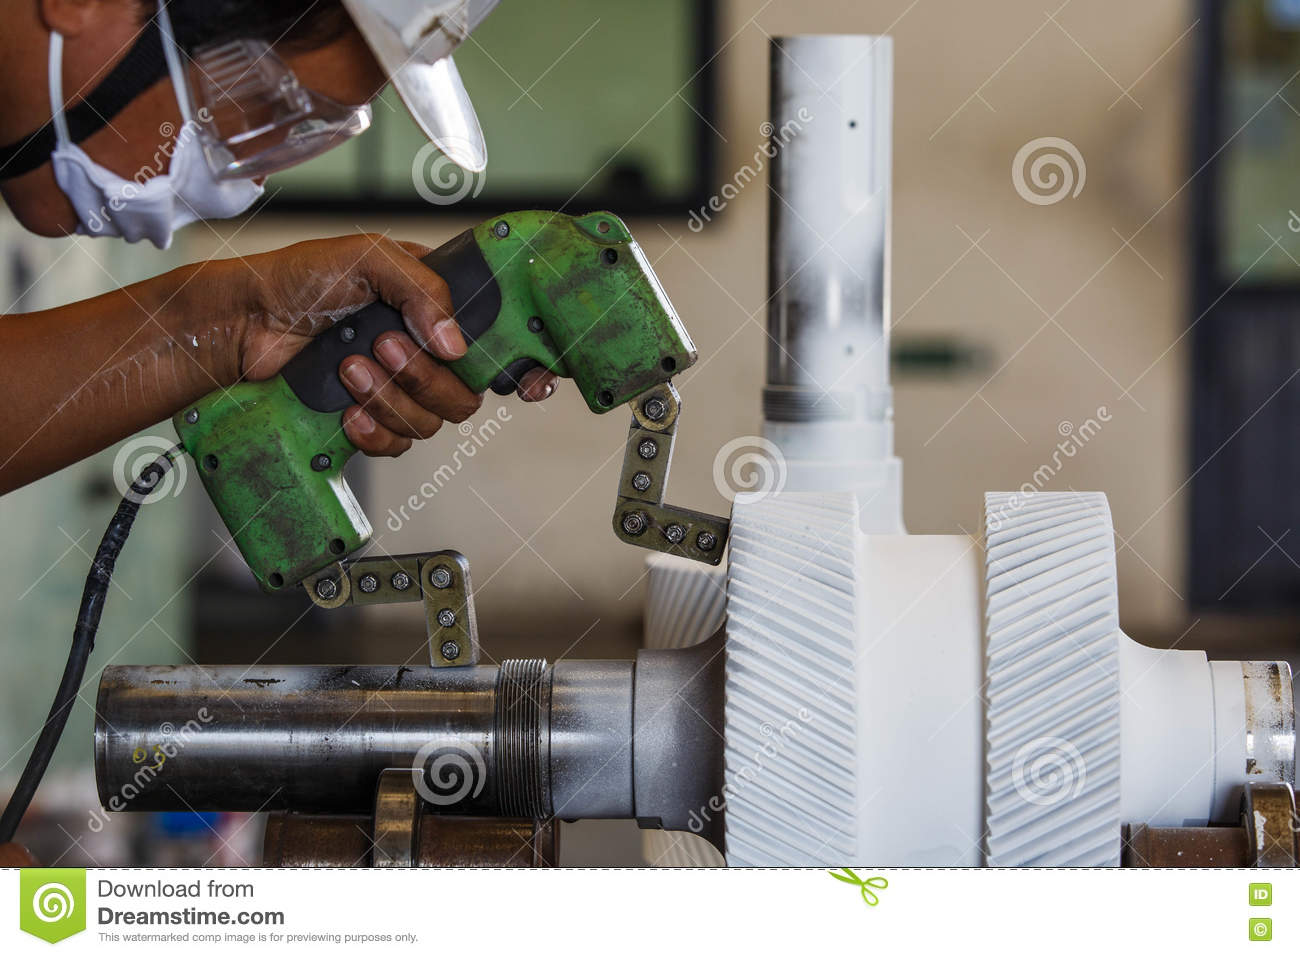 Magnetic Particle Inspection Stock Image - Image of particle